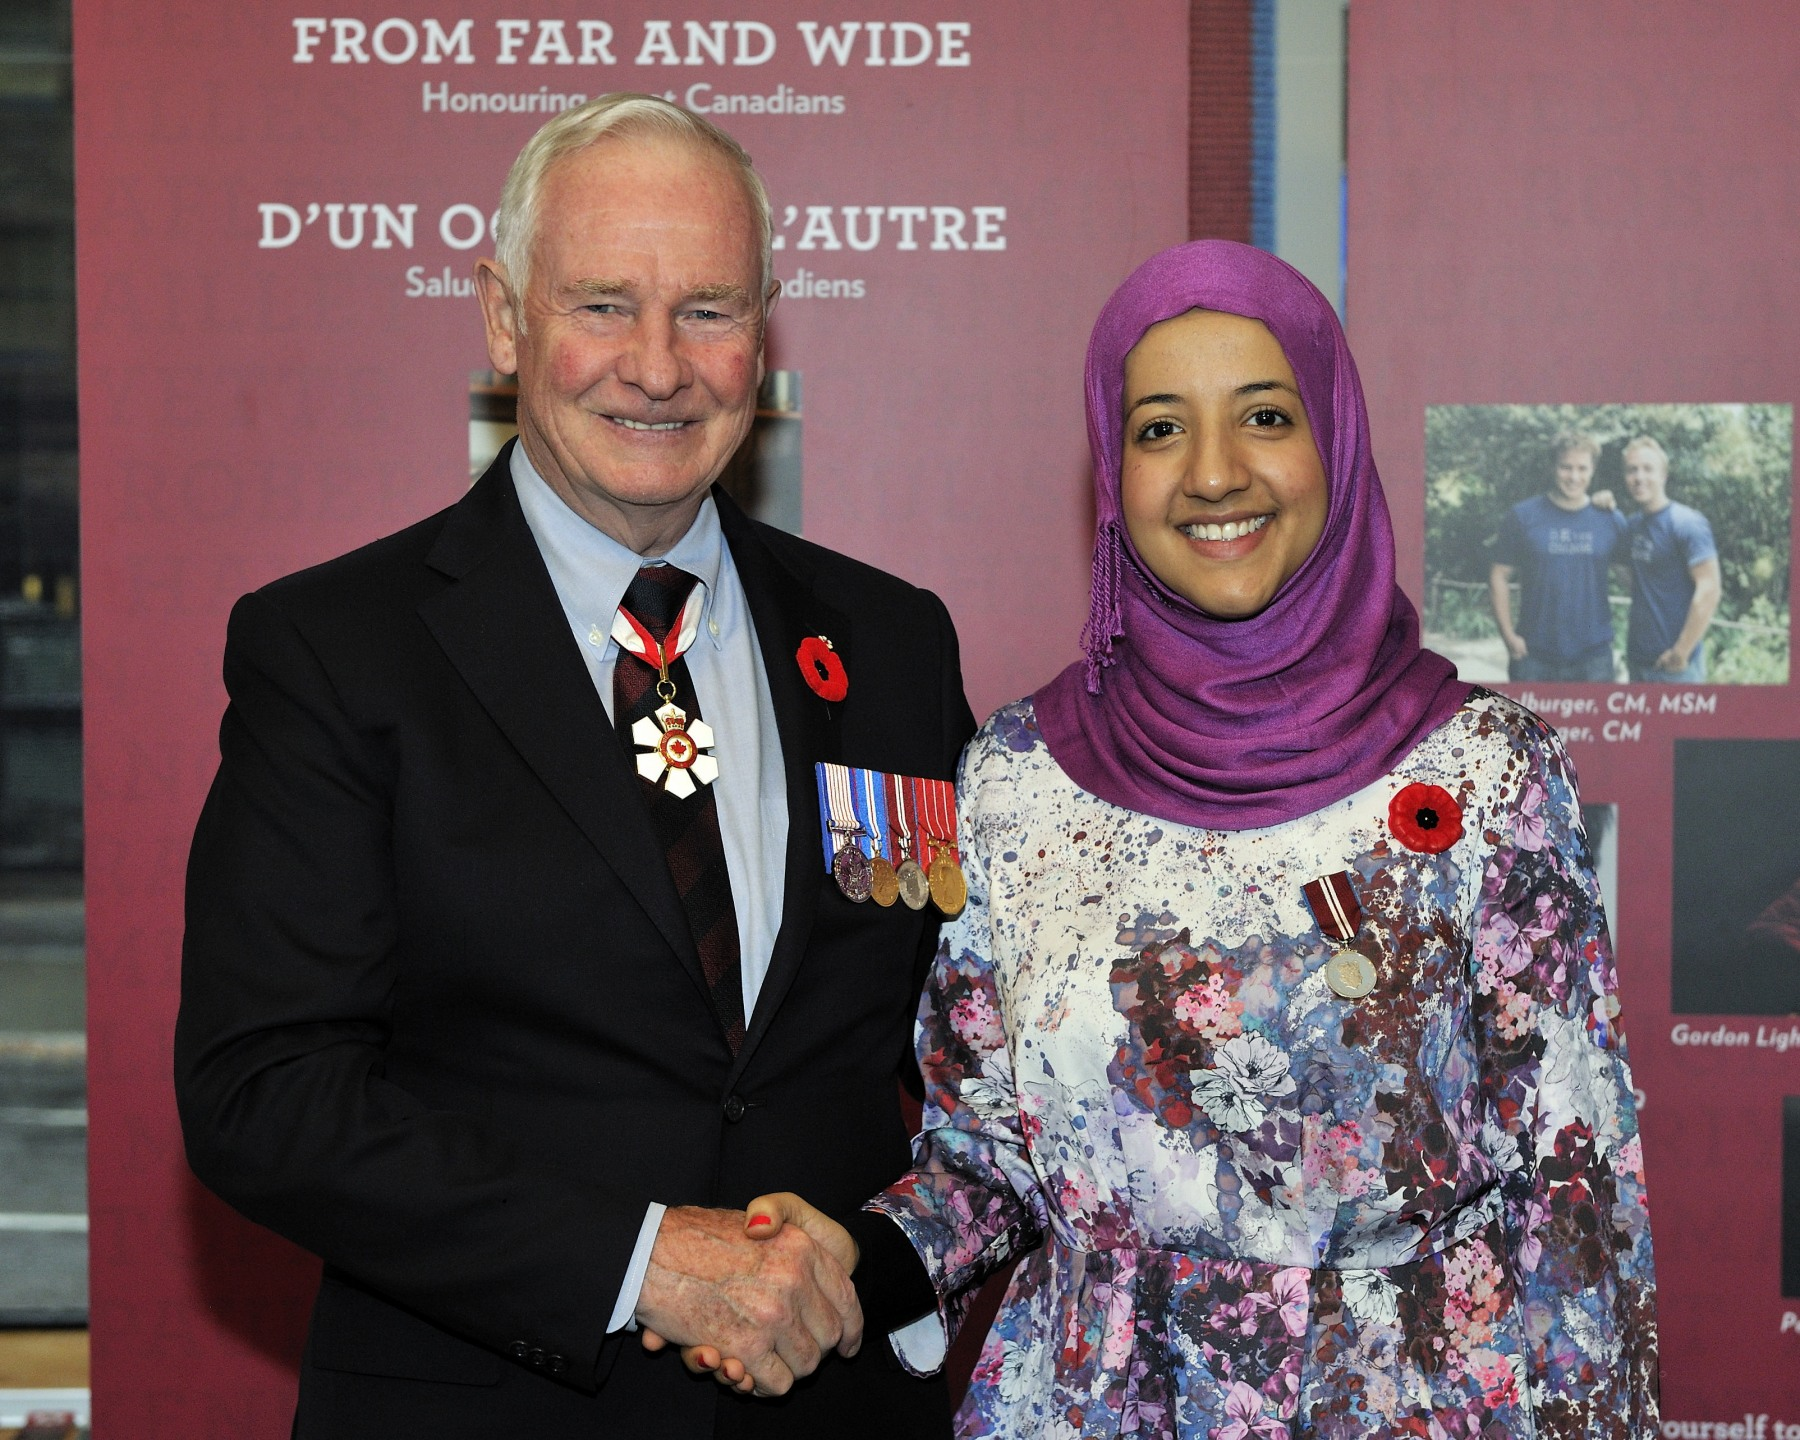 Rasha Al-Katta (Ottawa, Ontario) is recognized for her community service and her active volunteer work with United Way Ottawa.